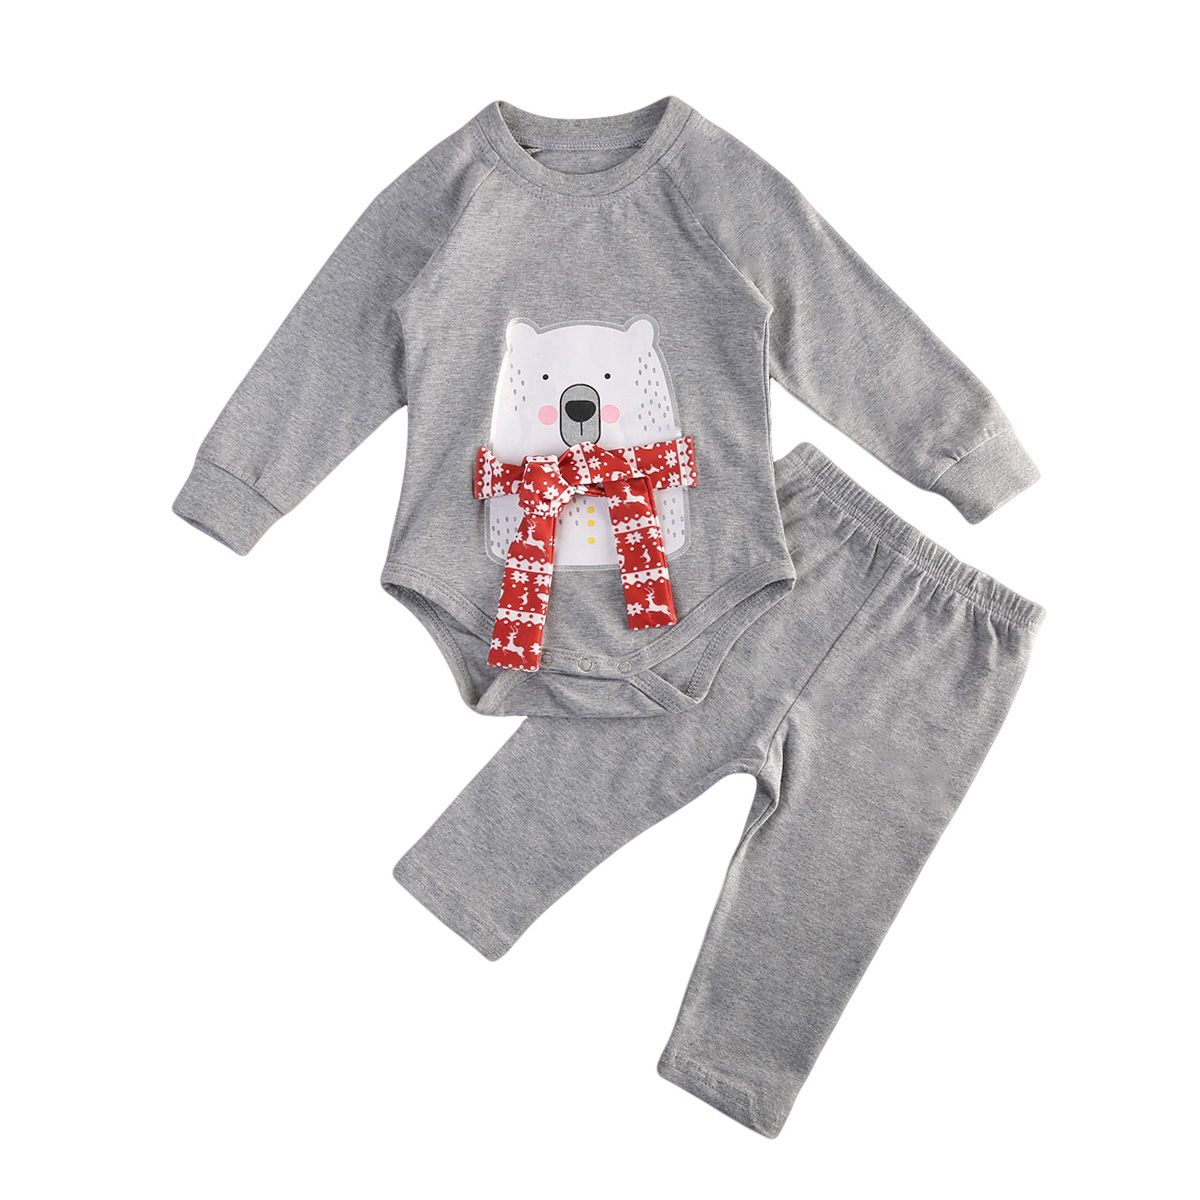 Cute Newborn Baby Cartoon Clothing Sets Boys Girls Christmas Clothes Tops Romper Pants 2PCS Fashion Long Sleeve Outfits puseky 2017 infant romper baby boys girls jumpsuit newborn bebe clothing hooded toddler baby clothes cute panda romper costumes